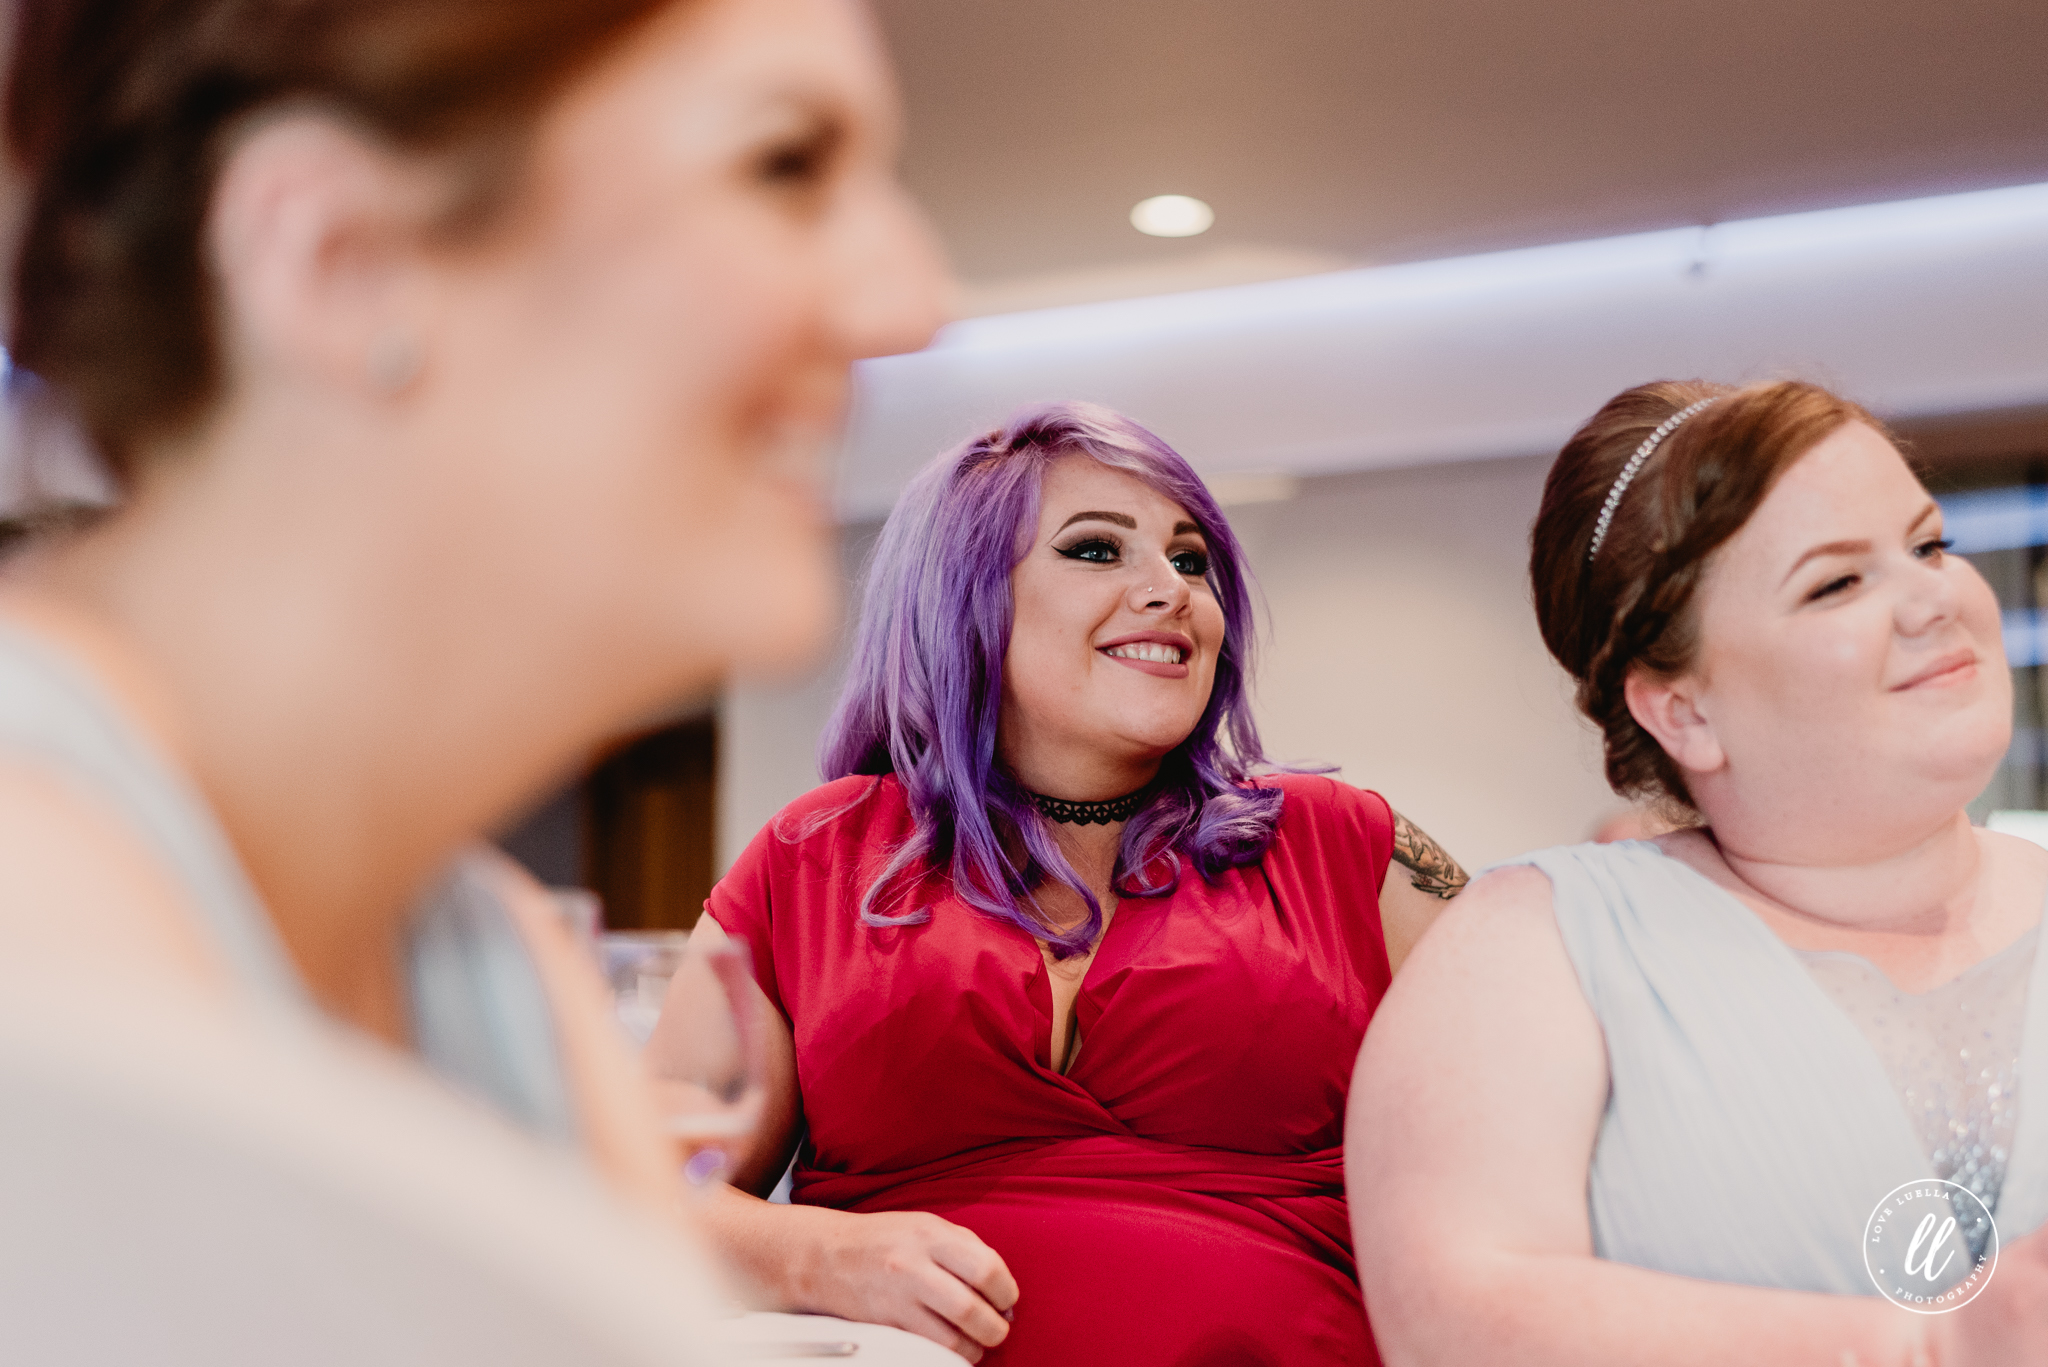 a guest with purple hair laughing along in a red dress